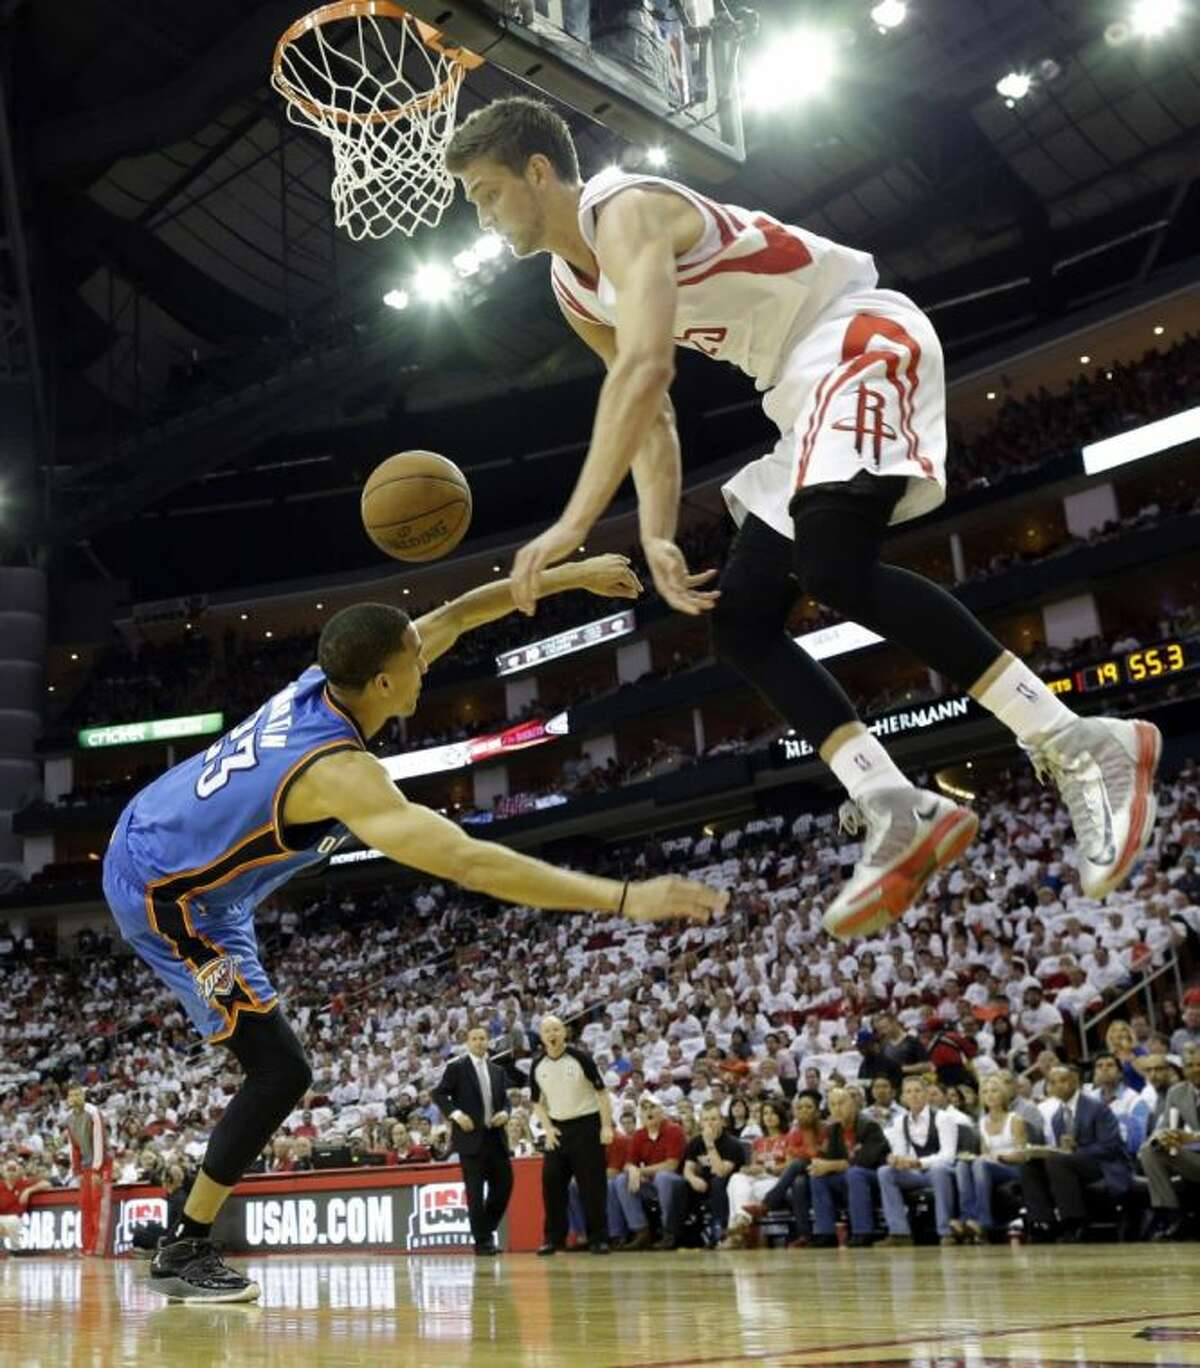 The Houston Rockets' Chandler Parsons fouls the Oklahoma City Thunder's Kevin Martin during the first quarter of Game 3 on Saturday in Houston.